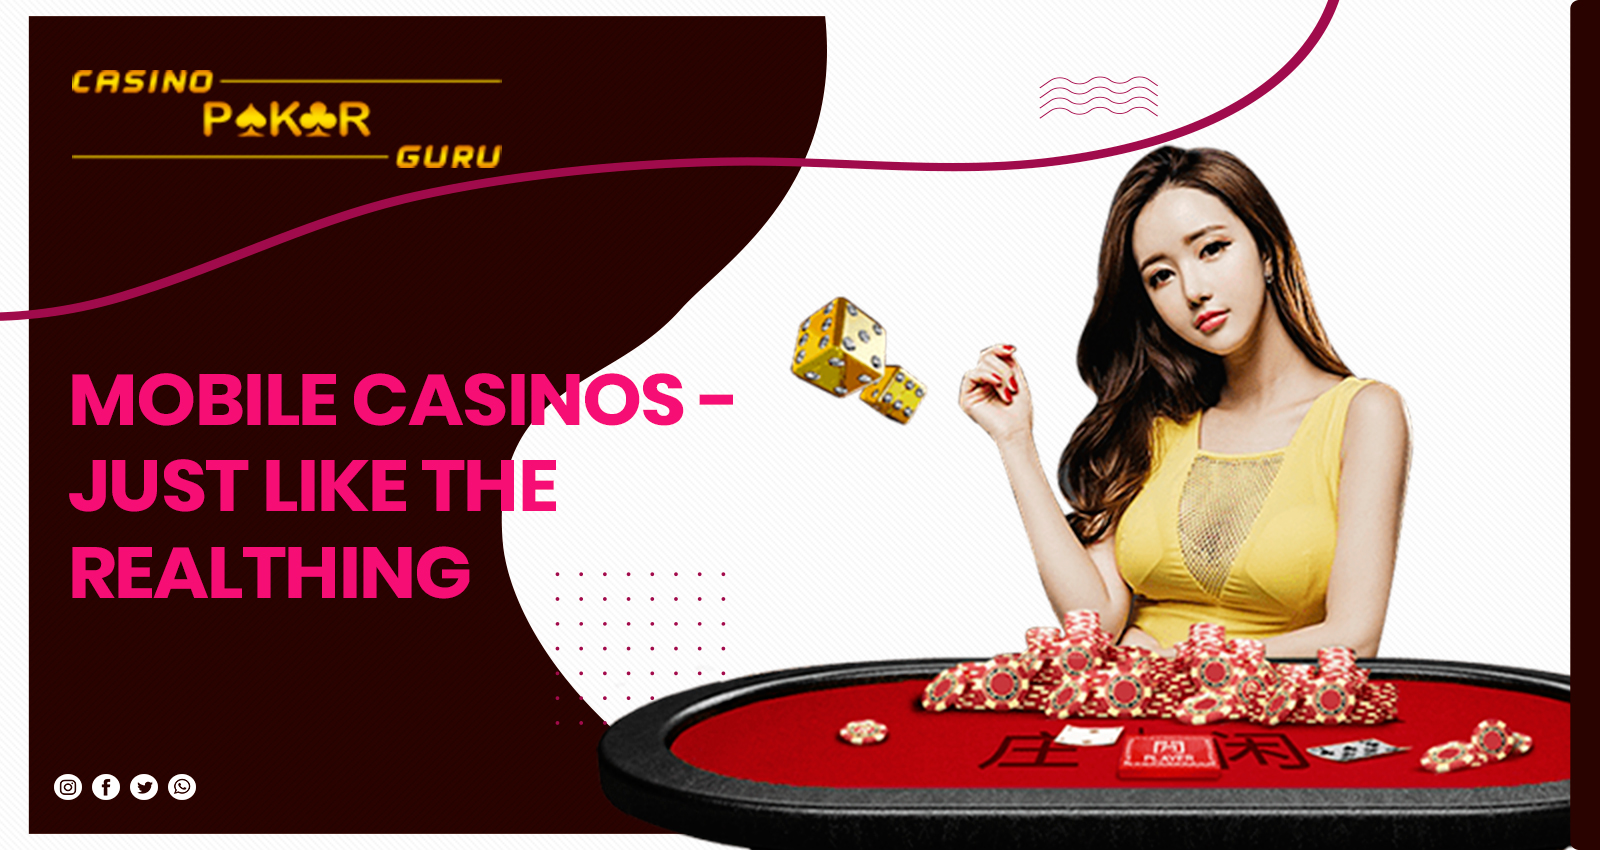 Mobile Casinos - Just Like The RealThing